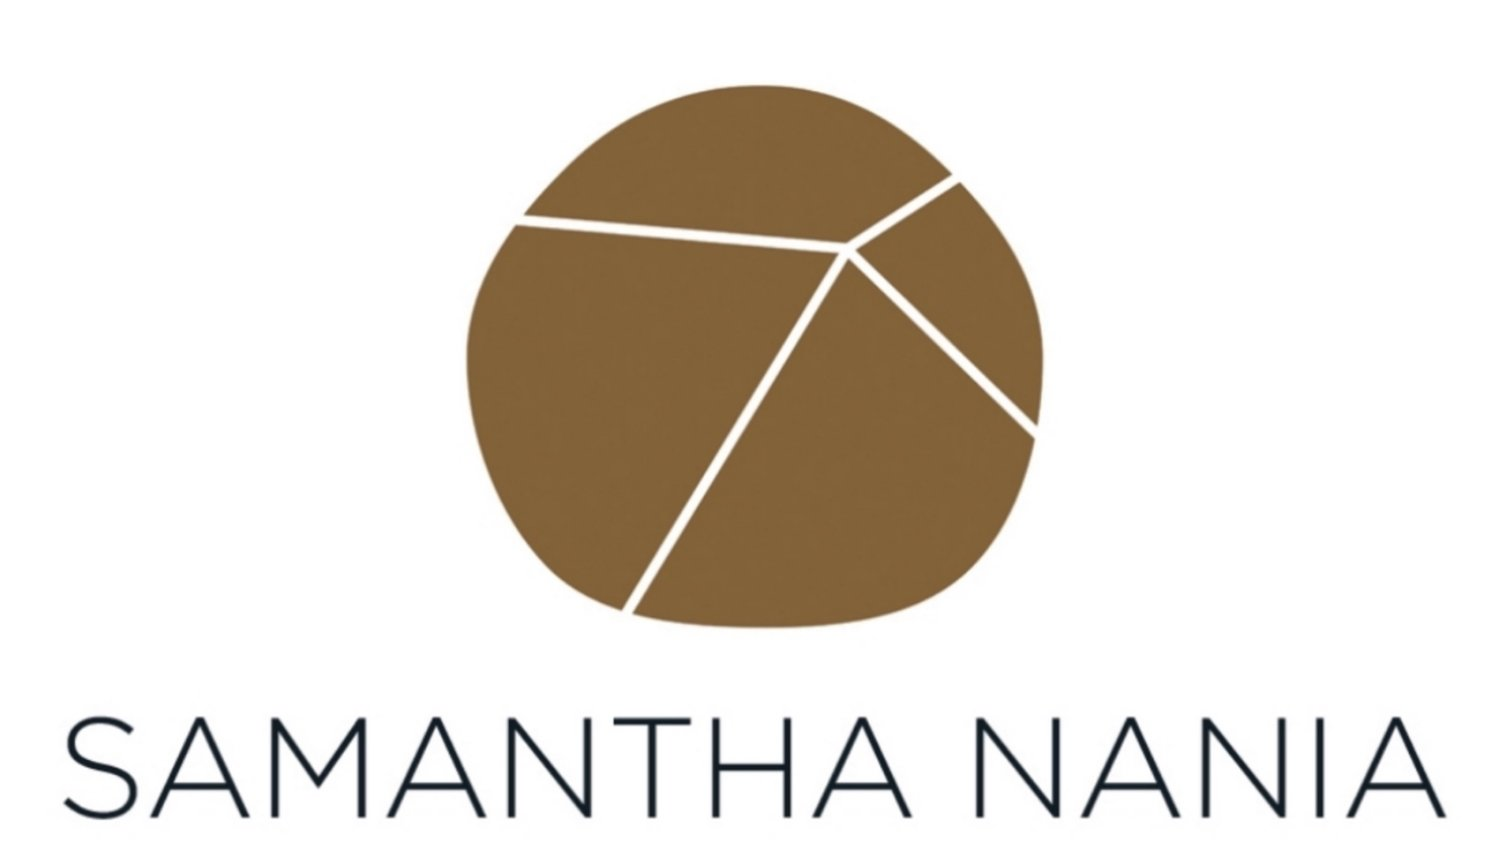 Samantha Nania Jewelry